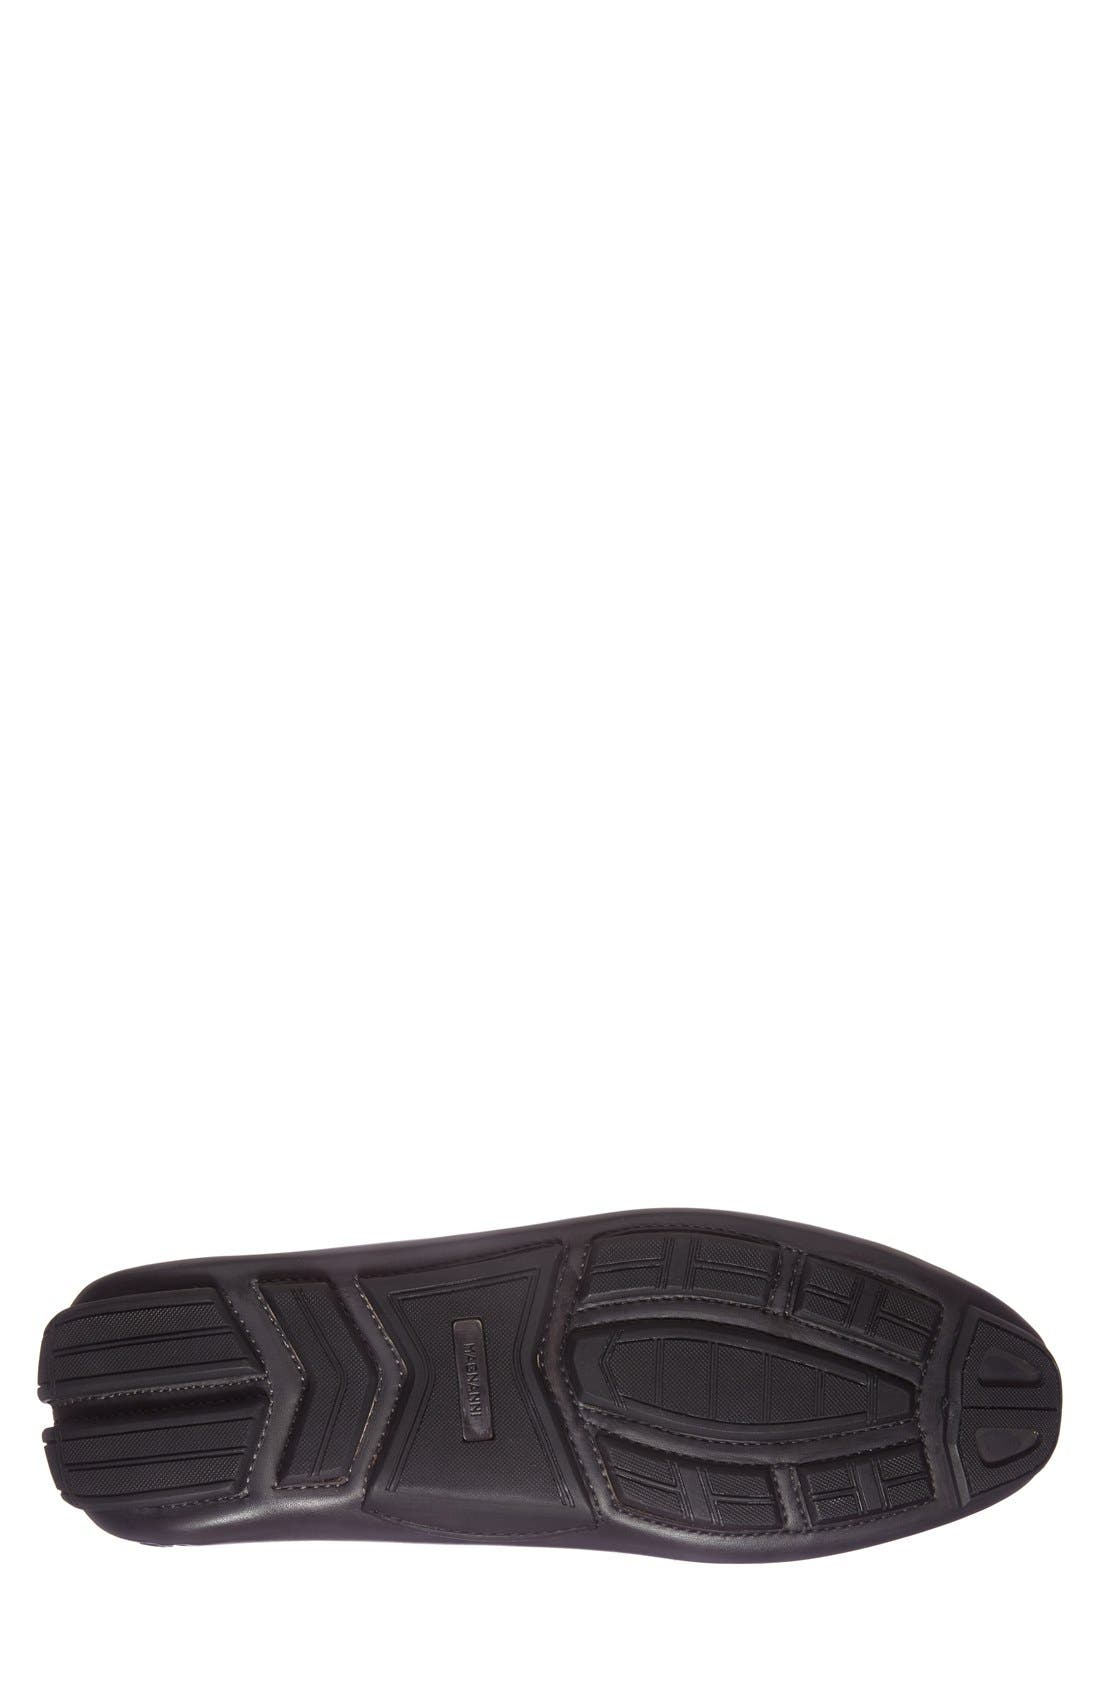 'Dylan' Leather Driving Shoe,                             Alternate thumbnail 25, color,